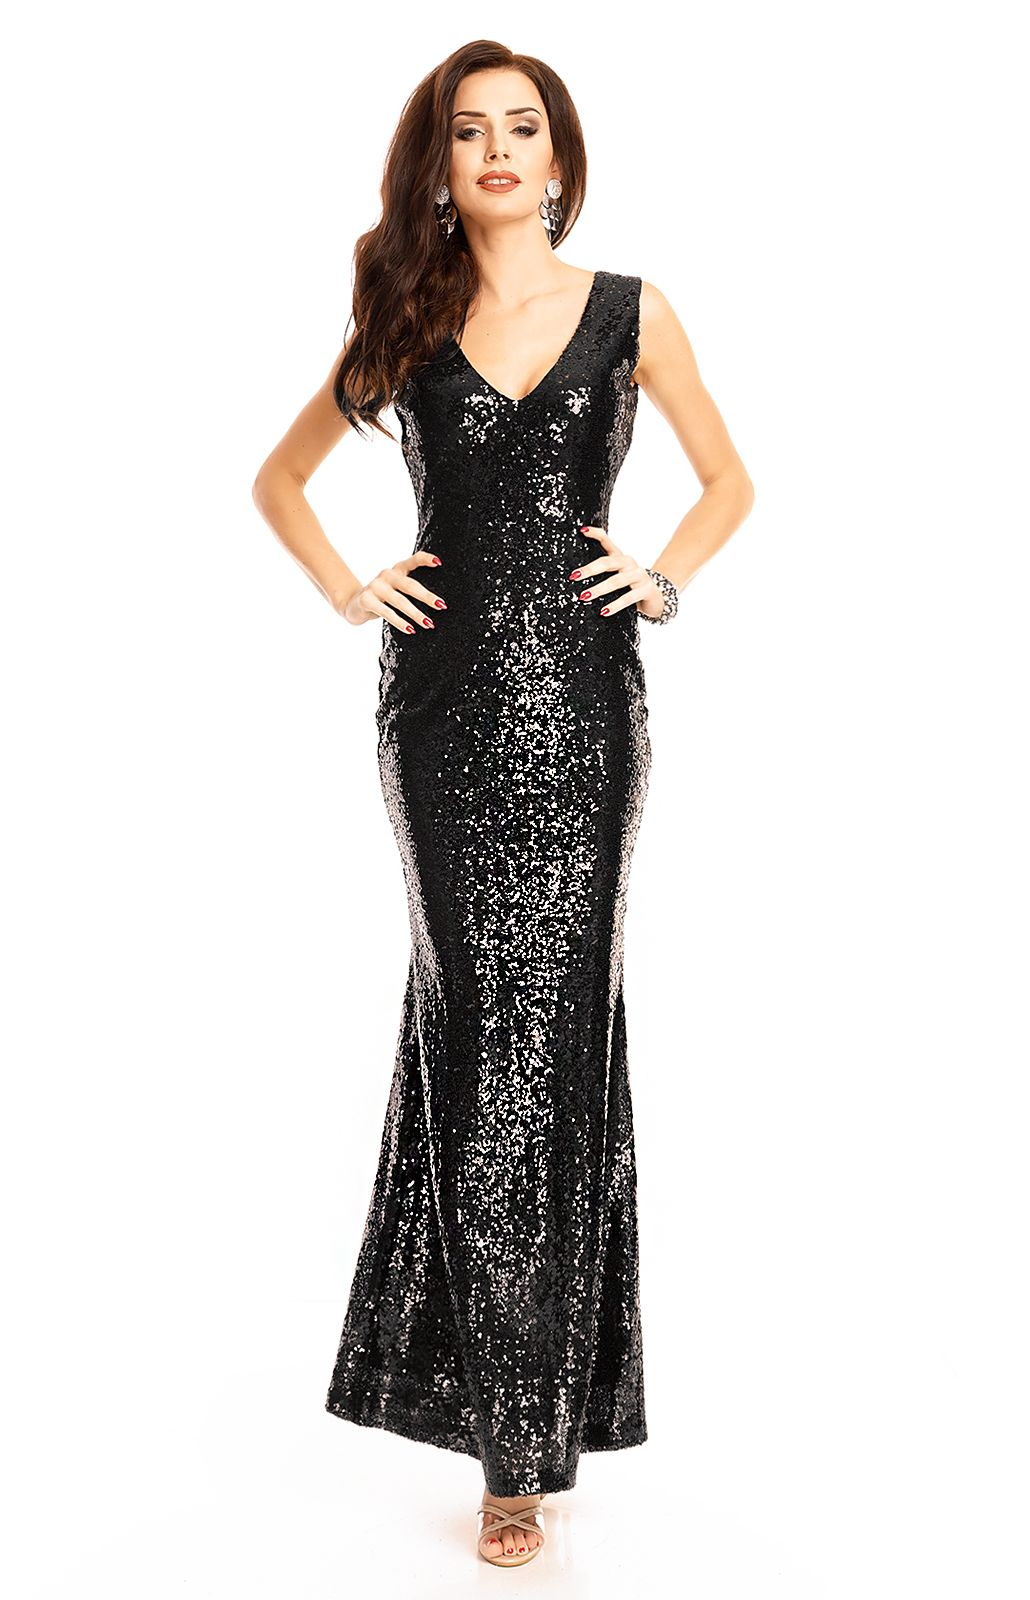 Black evening gown Emma Emma Ashley WJ7238N : idresstocode: online ...